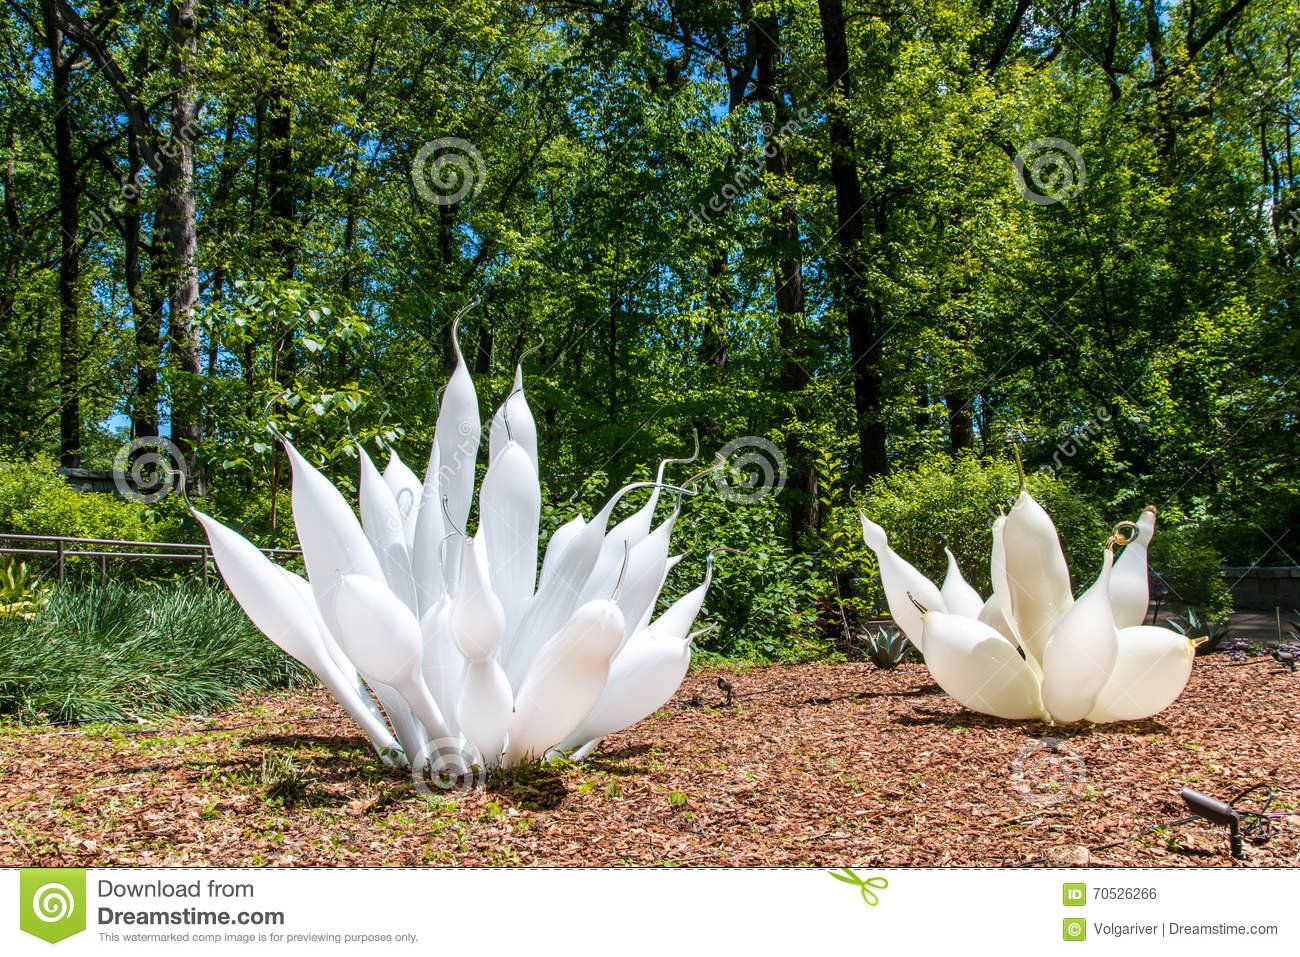 Download Exhibition Of Glass Artist Chihuly In Atlanta Botanical Garden  Editorial Photo   Image Of Exhibition